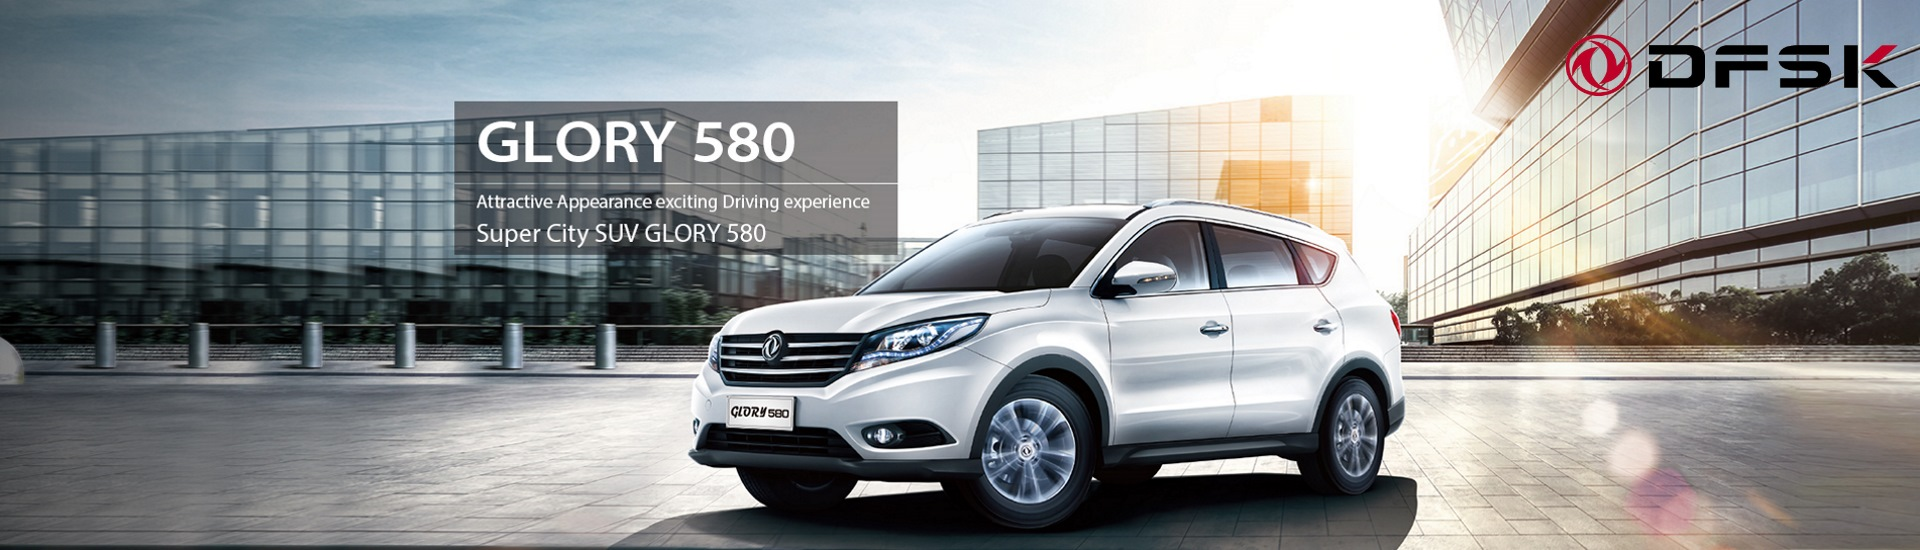 DFSK SUV 580 Intelligent